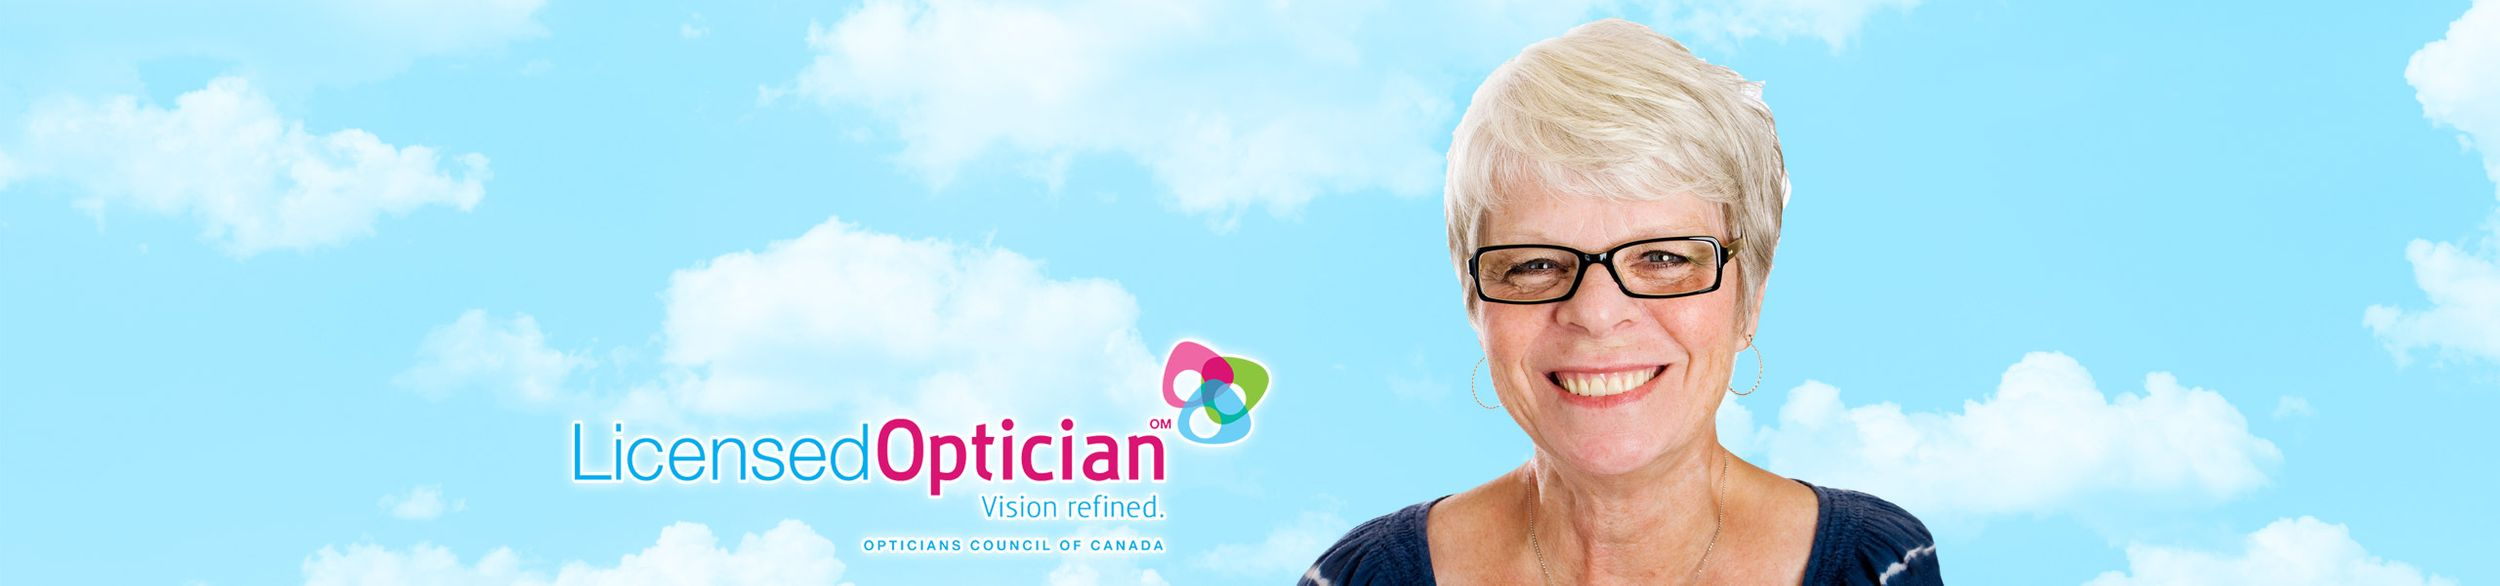 Licensed Optician | Lady with Glasses